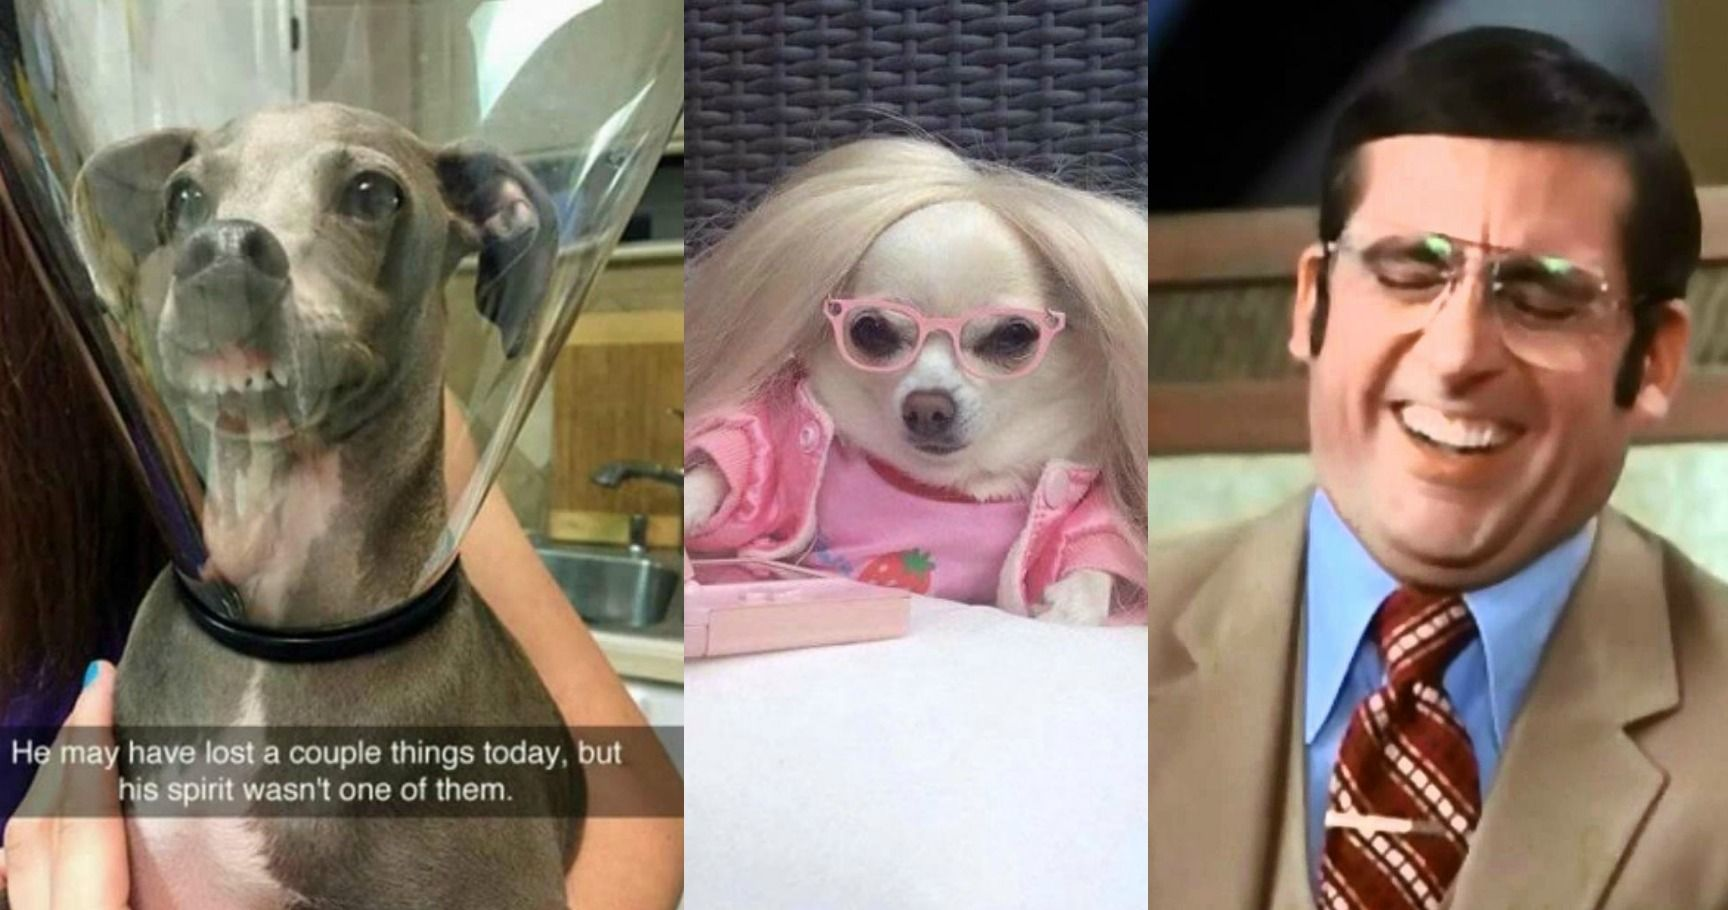 15 Hilarious Posts About Dogs That Will Make You Ugly Laugh